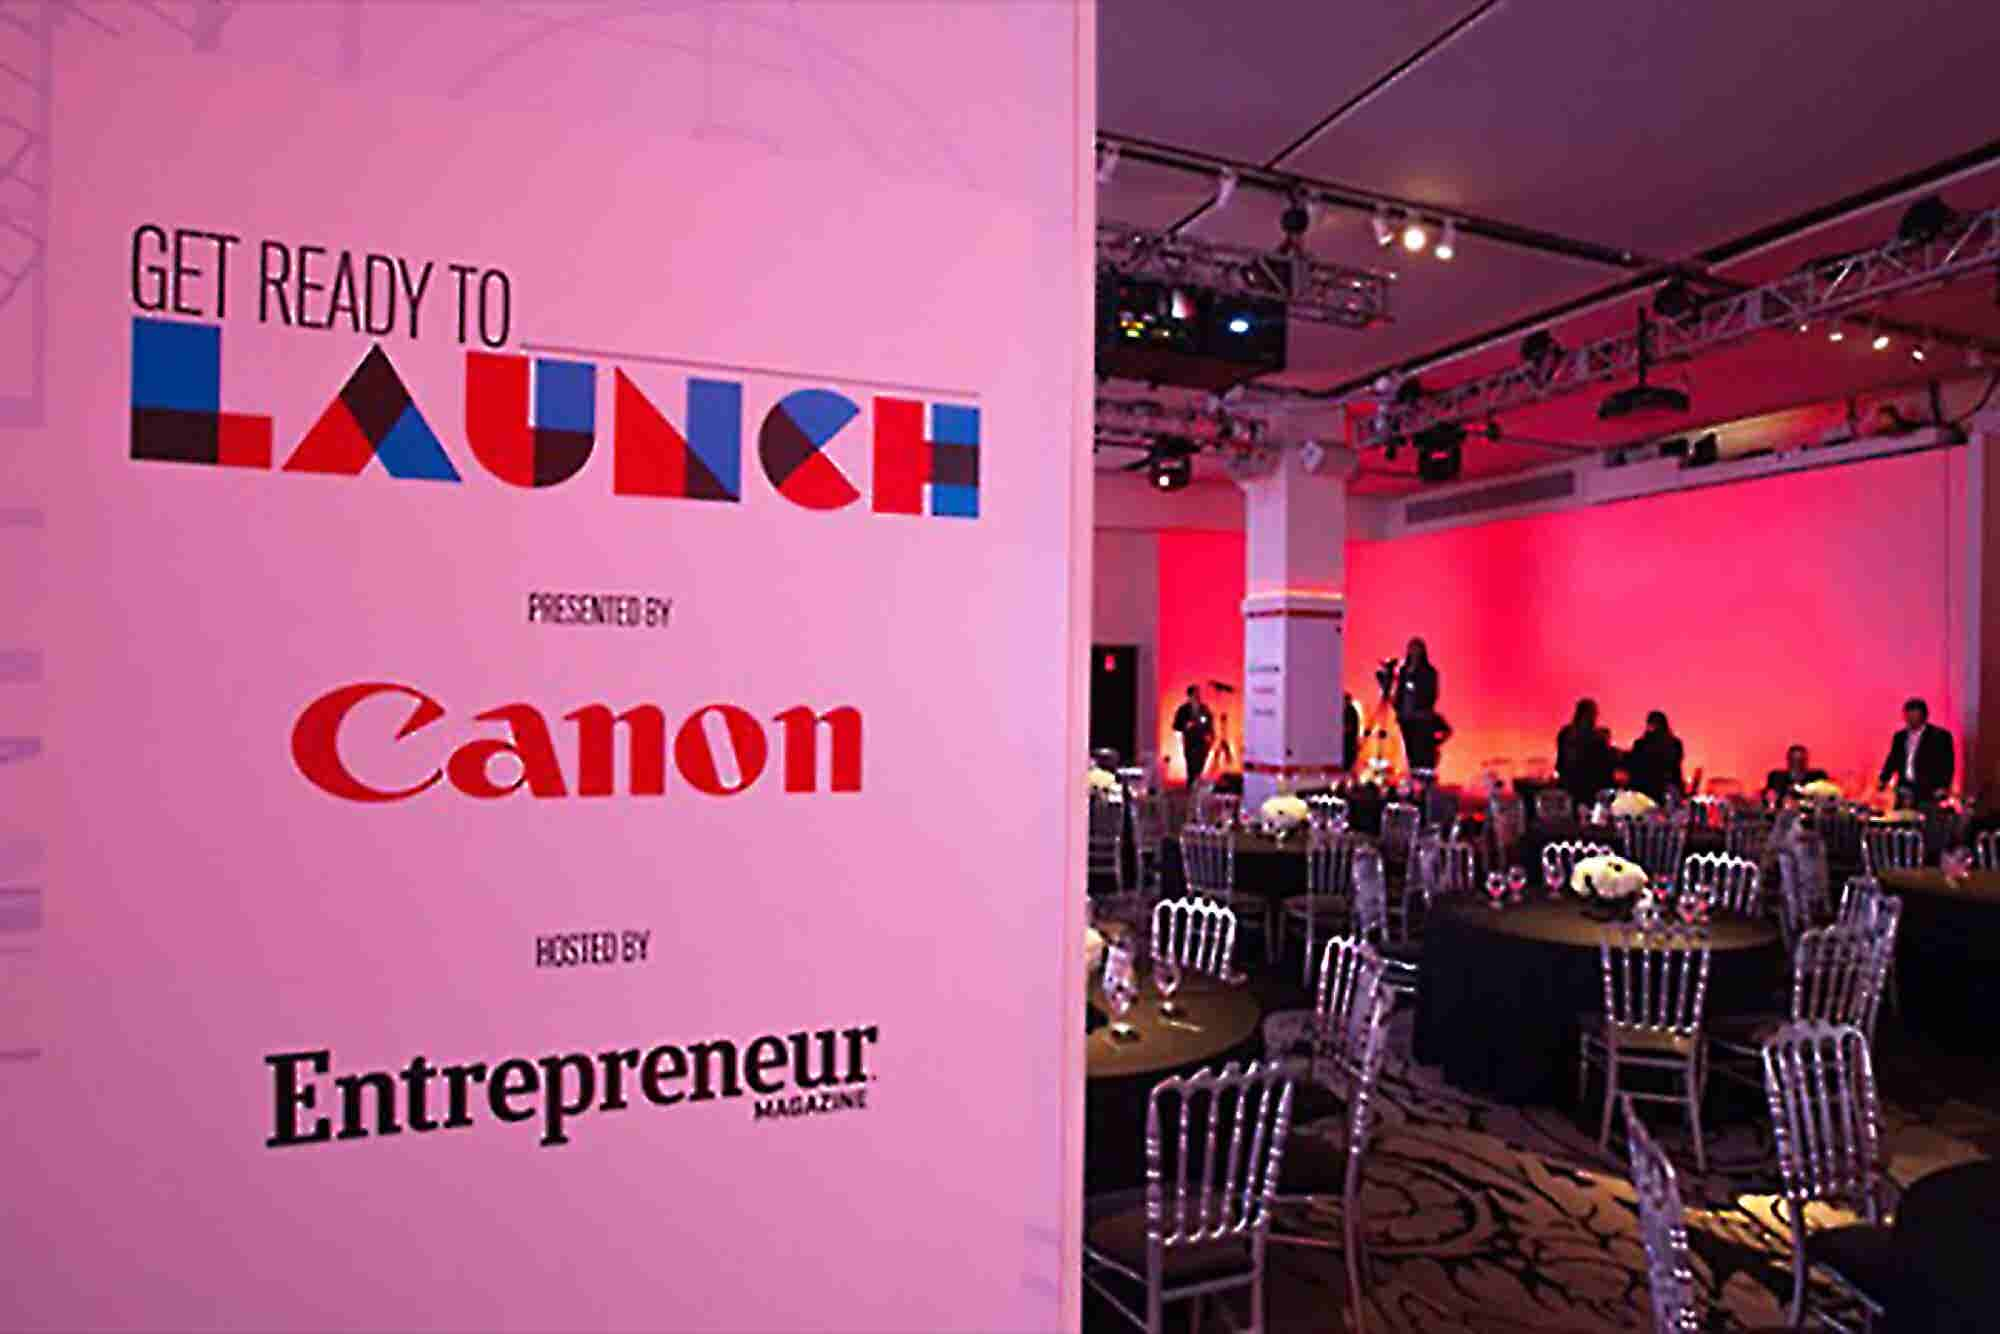 Barbara Corcoran on Thinking Big: Highlights from Entrepreneur's Ready to Launch Event